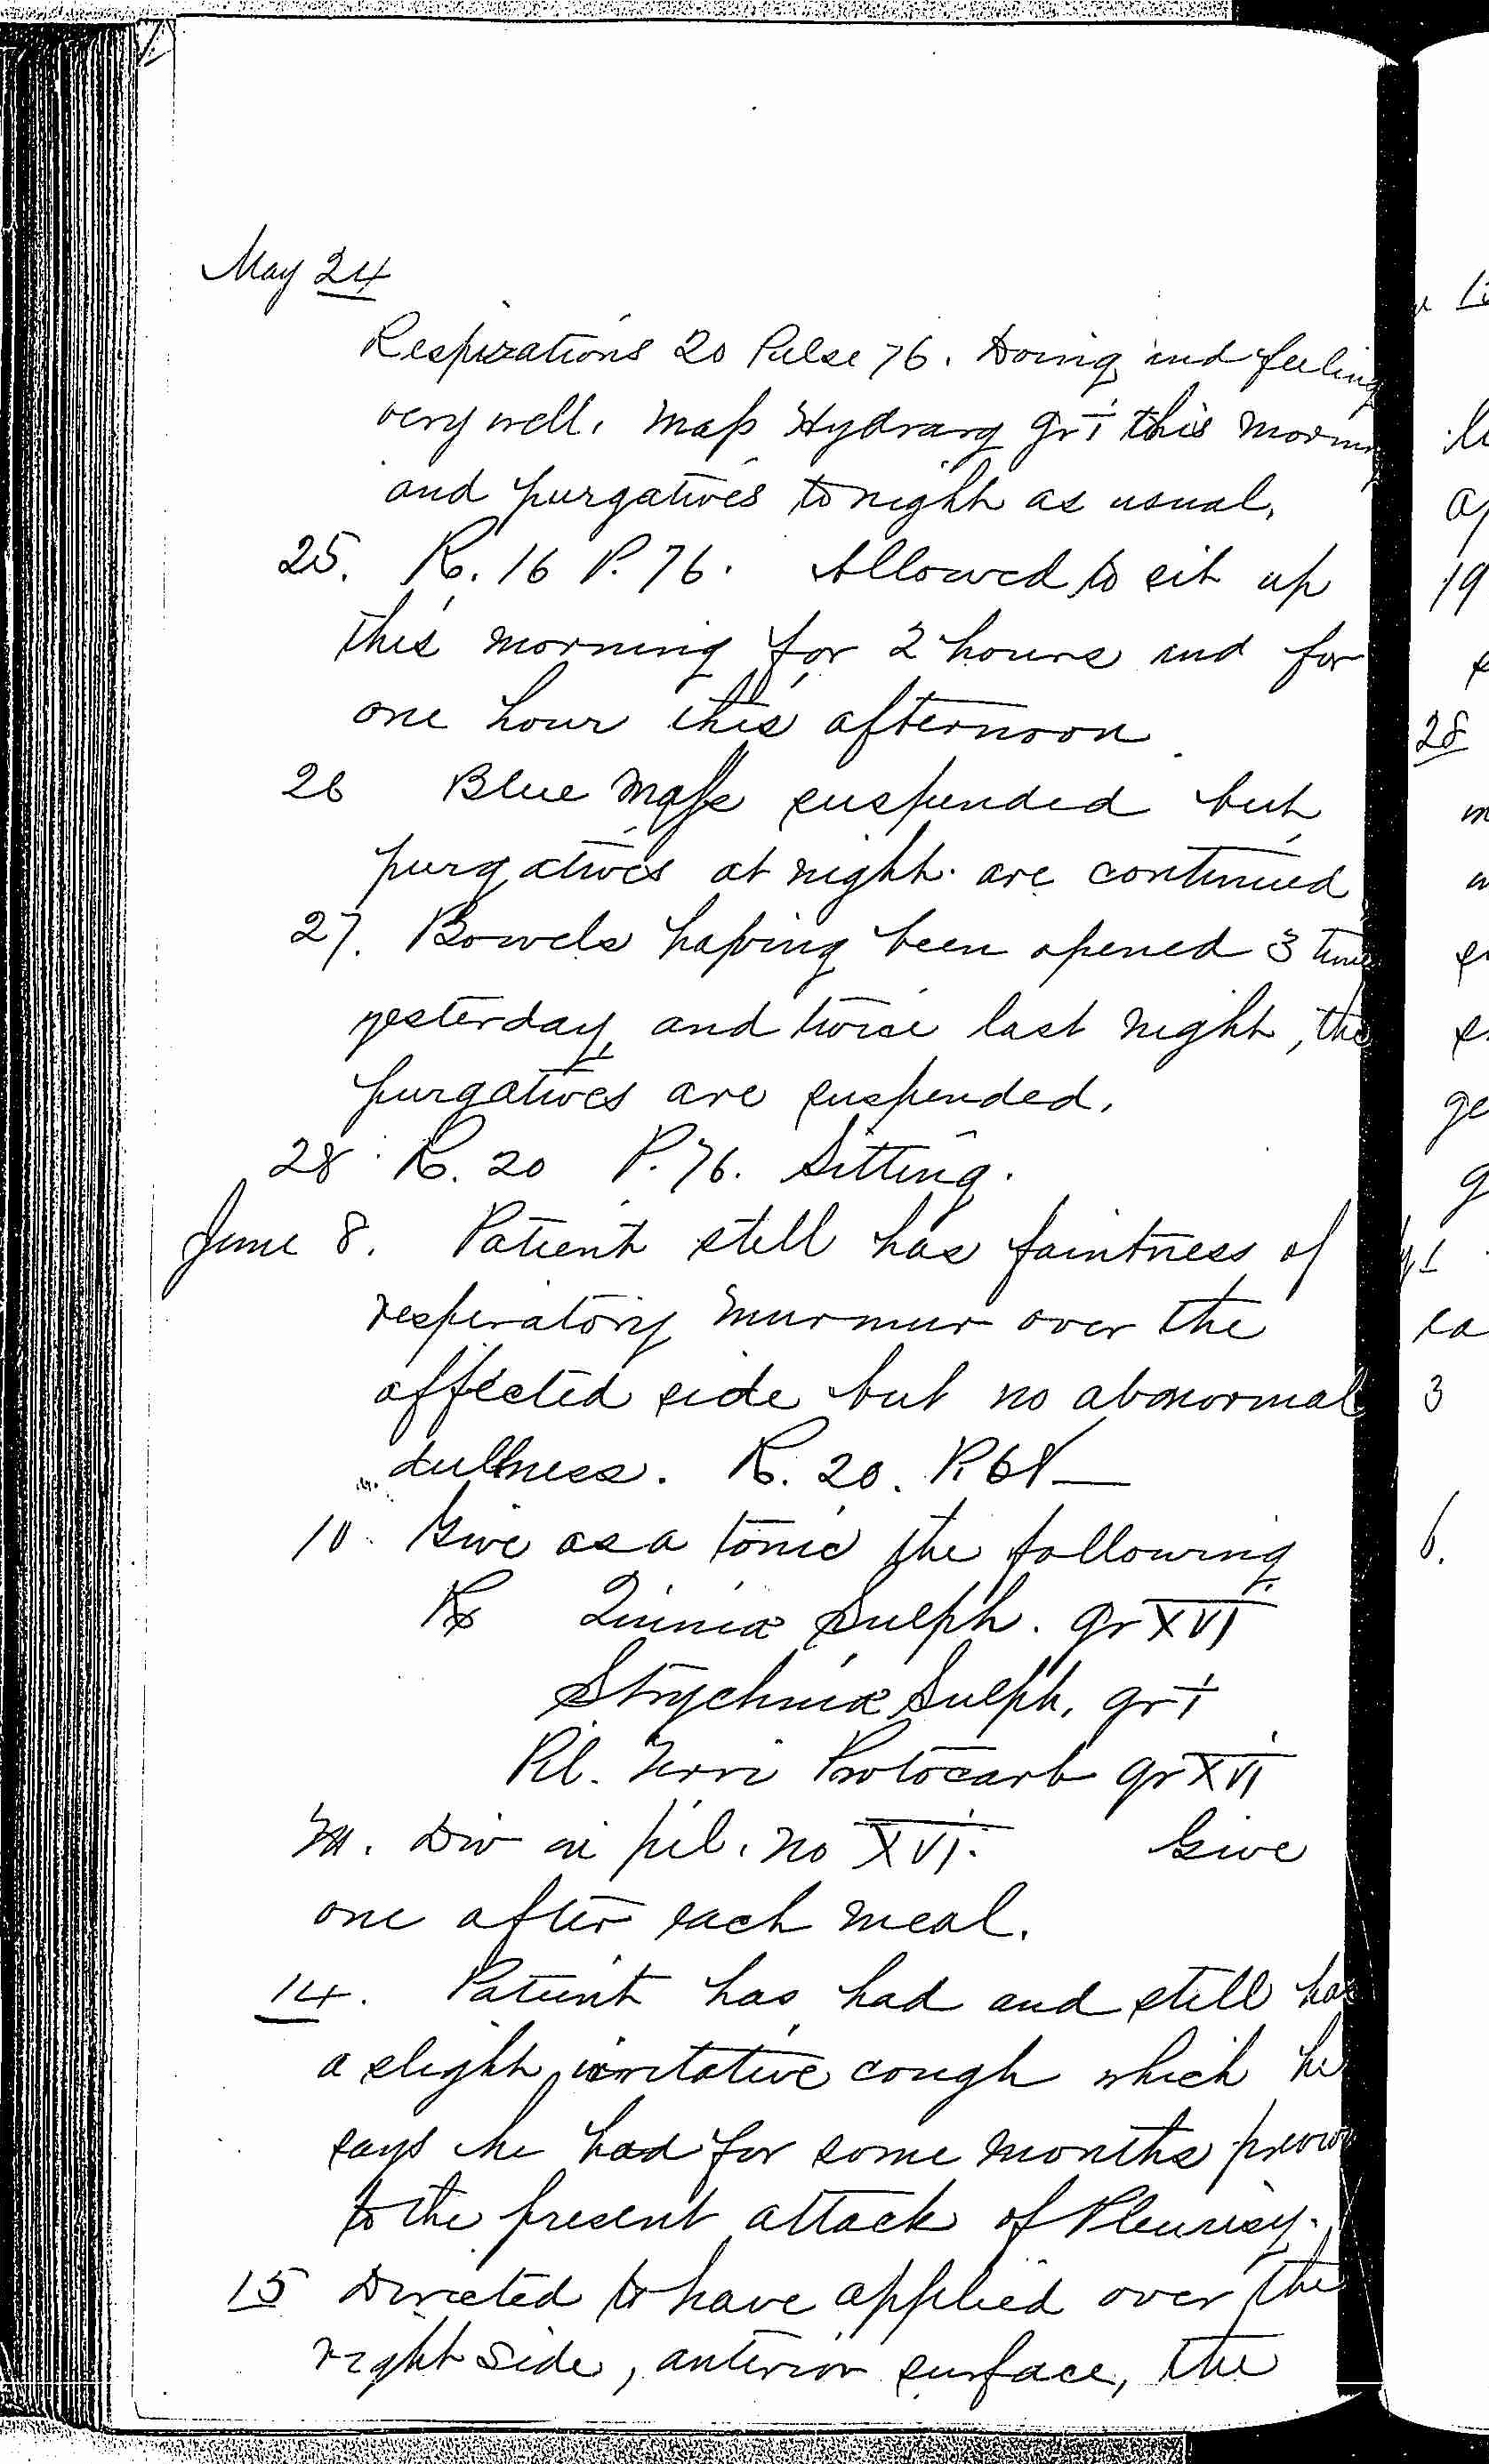 Entry for James W. Quinn (page 6 of 7) in the log Hospital Tickets and Case Papers - Naval Hospital - Washington, D.C. - 1868-69